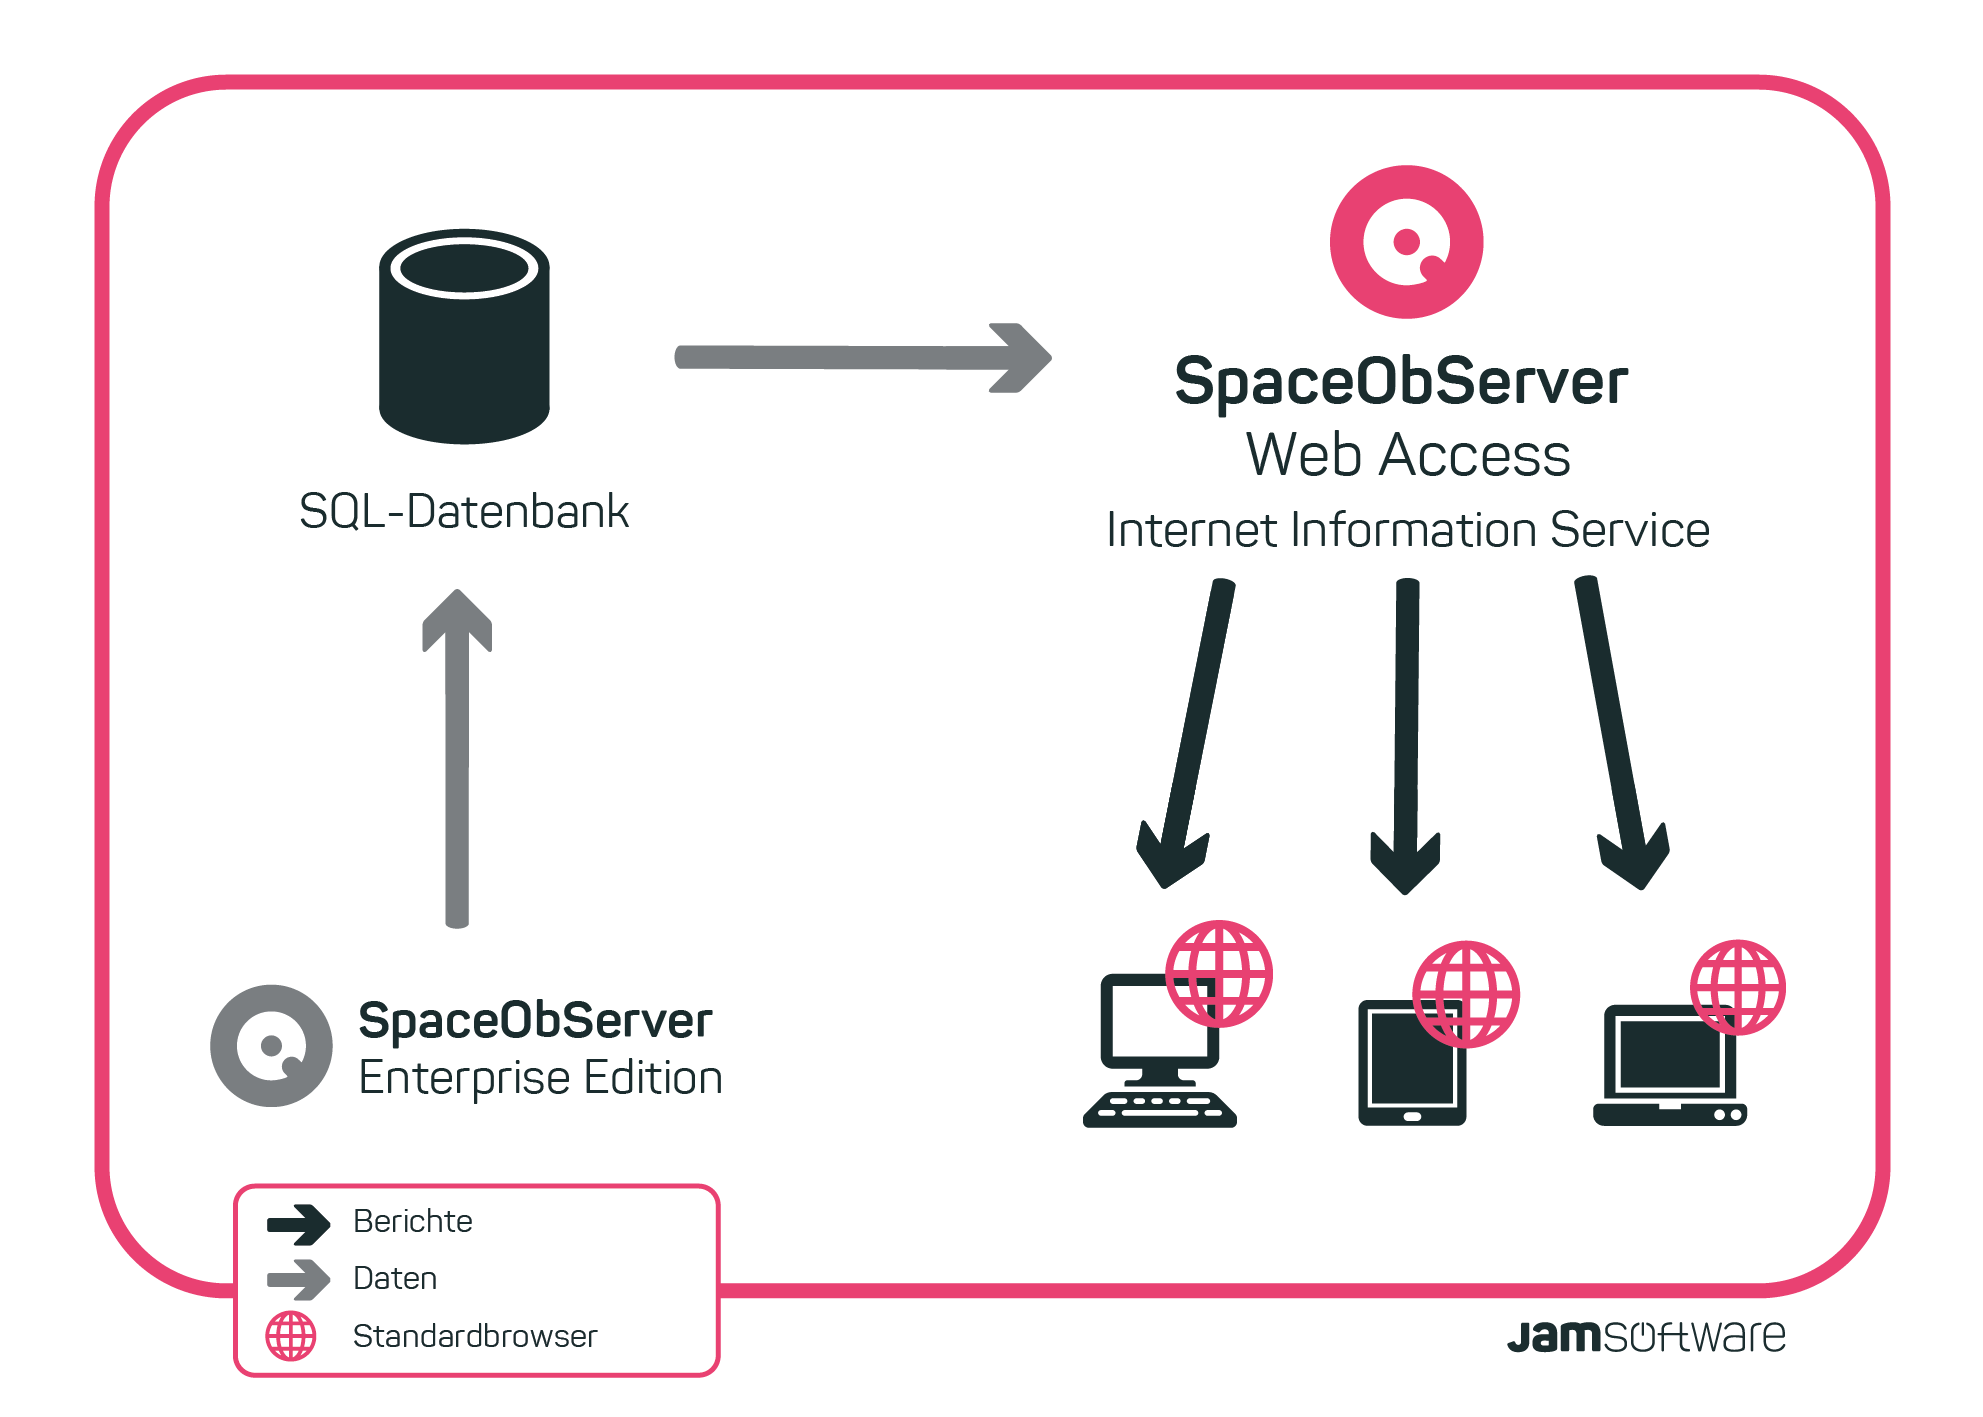 Funktionsweise von SpaceObServer WebAccess